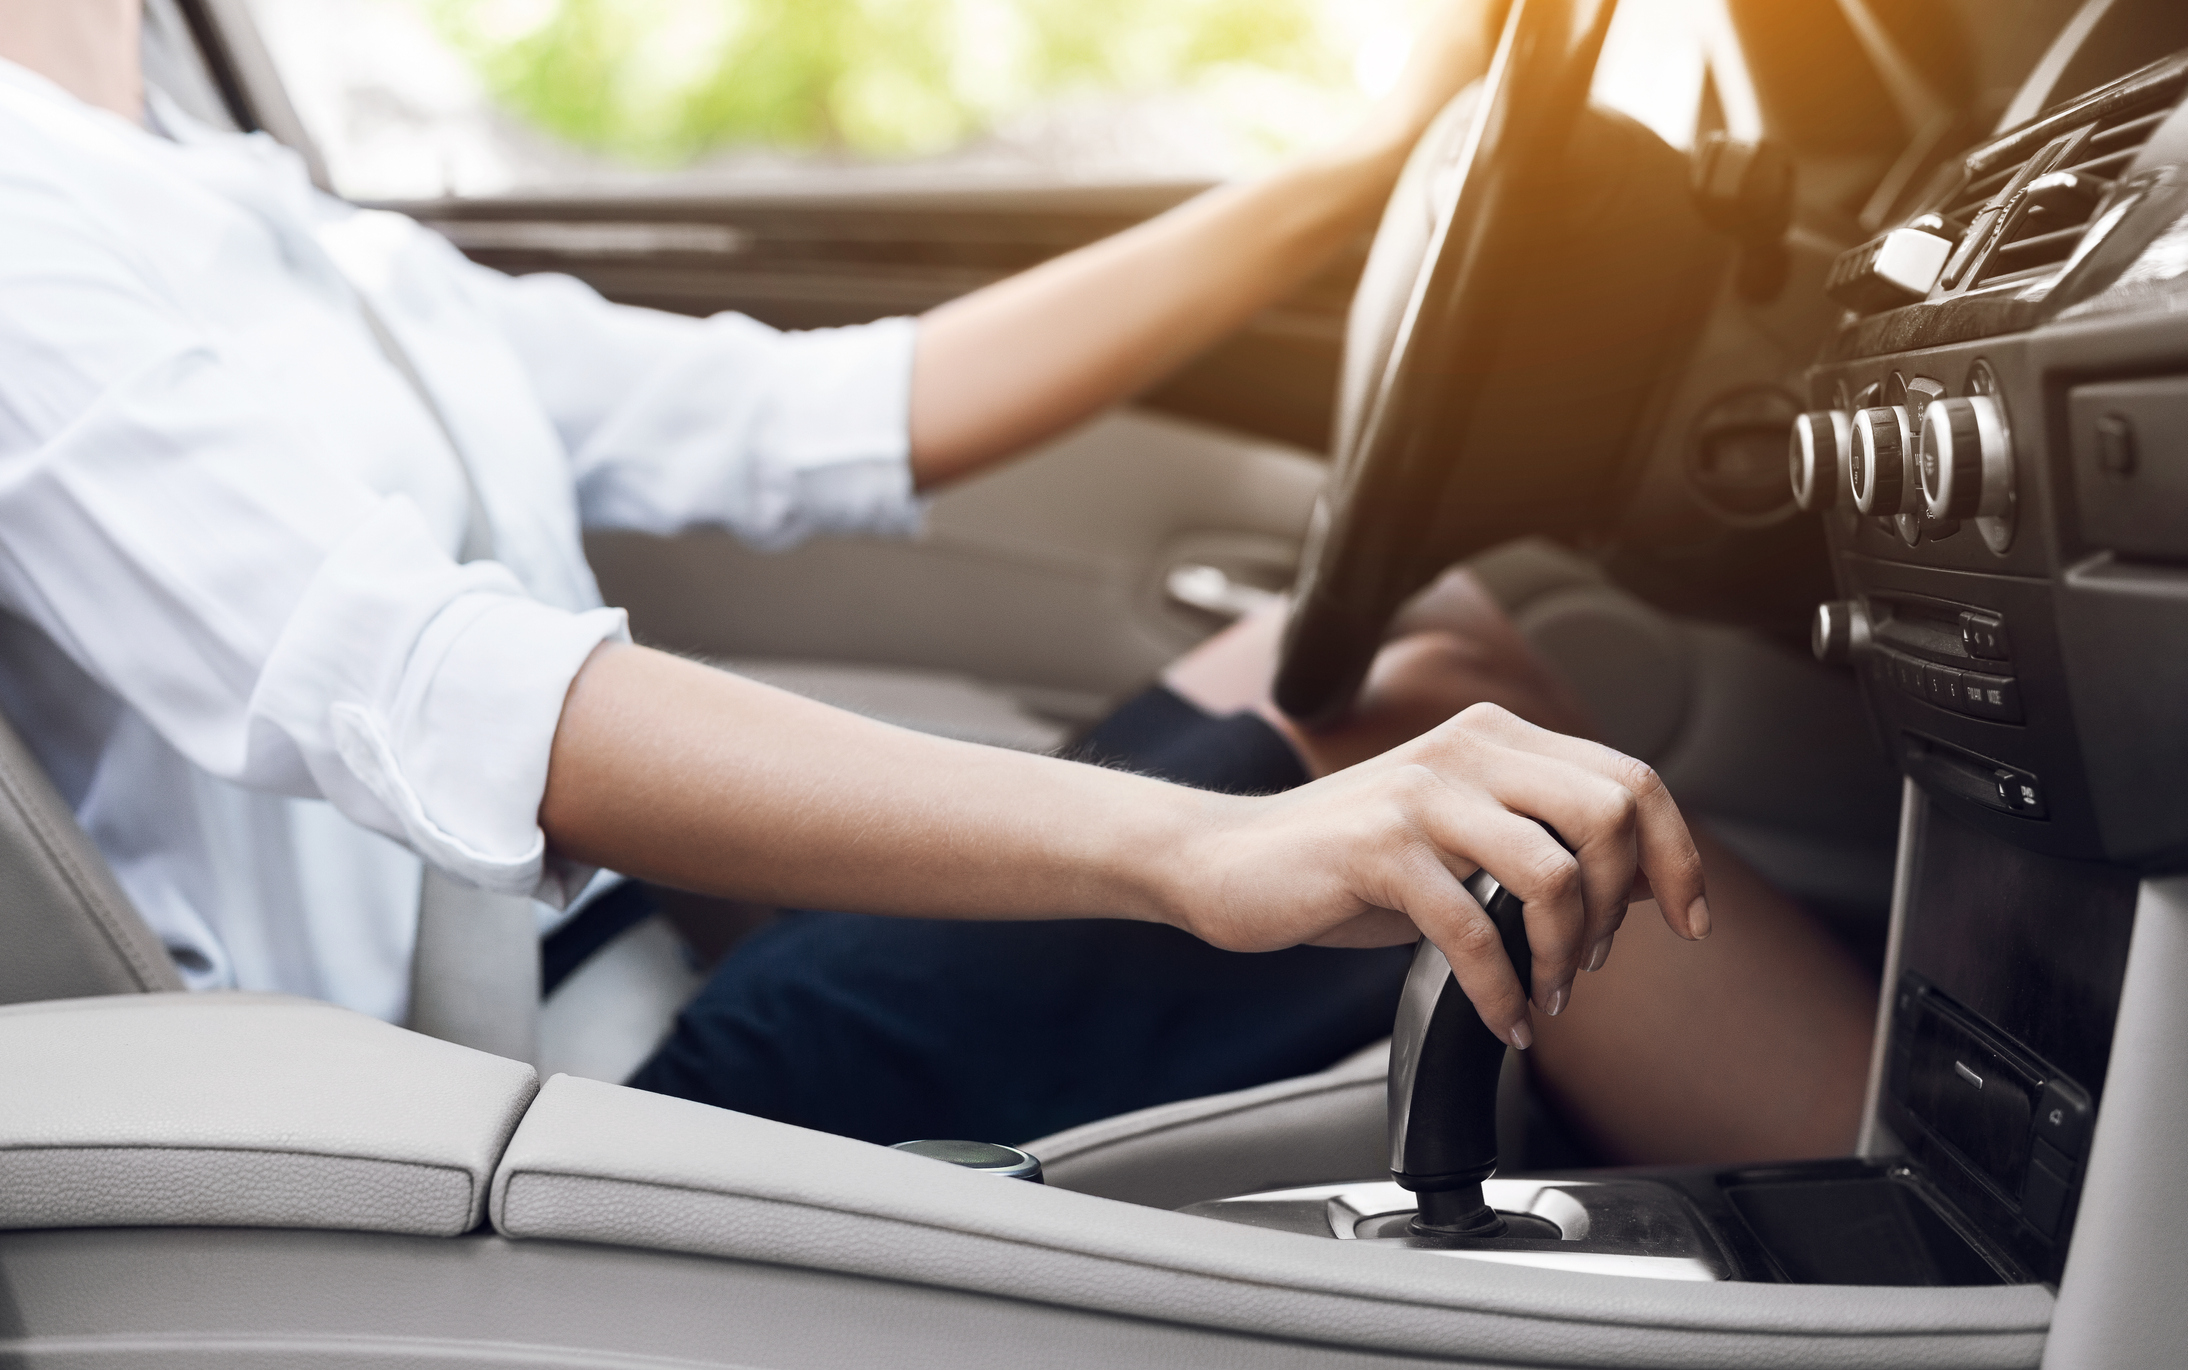 Drivers of automatic transmission vehicles may be experiencing gear slippage